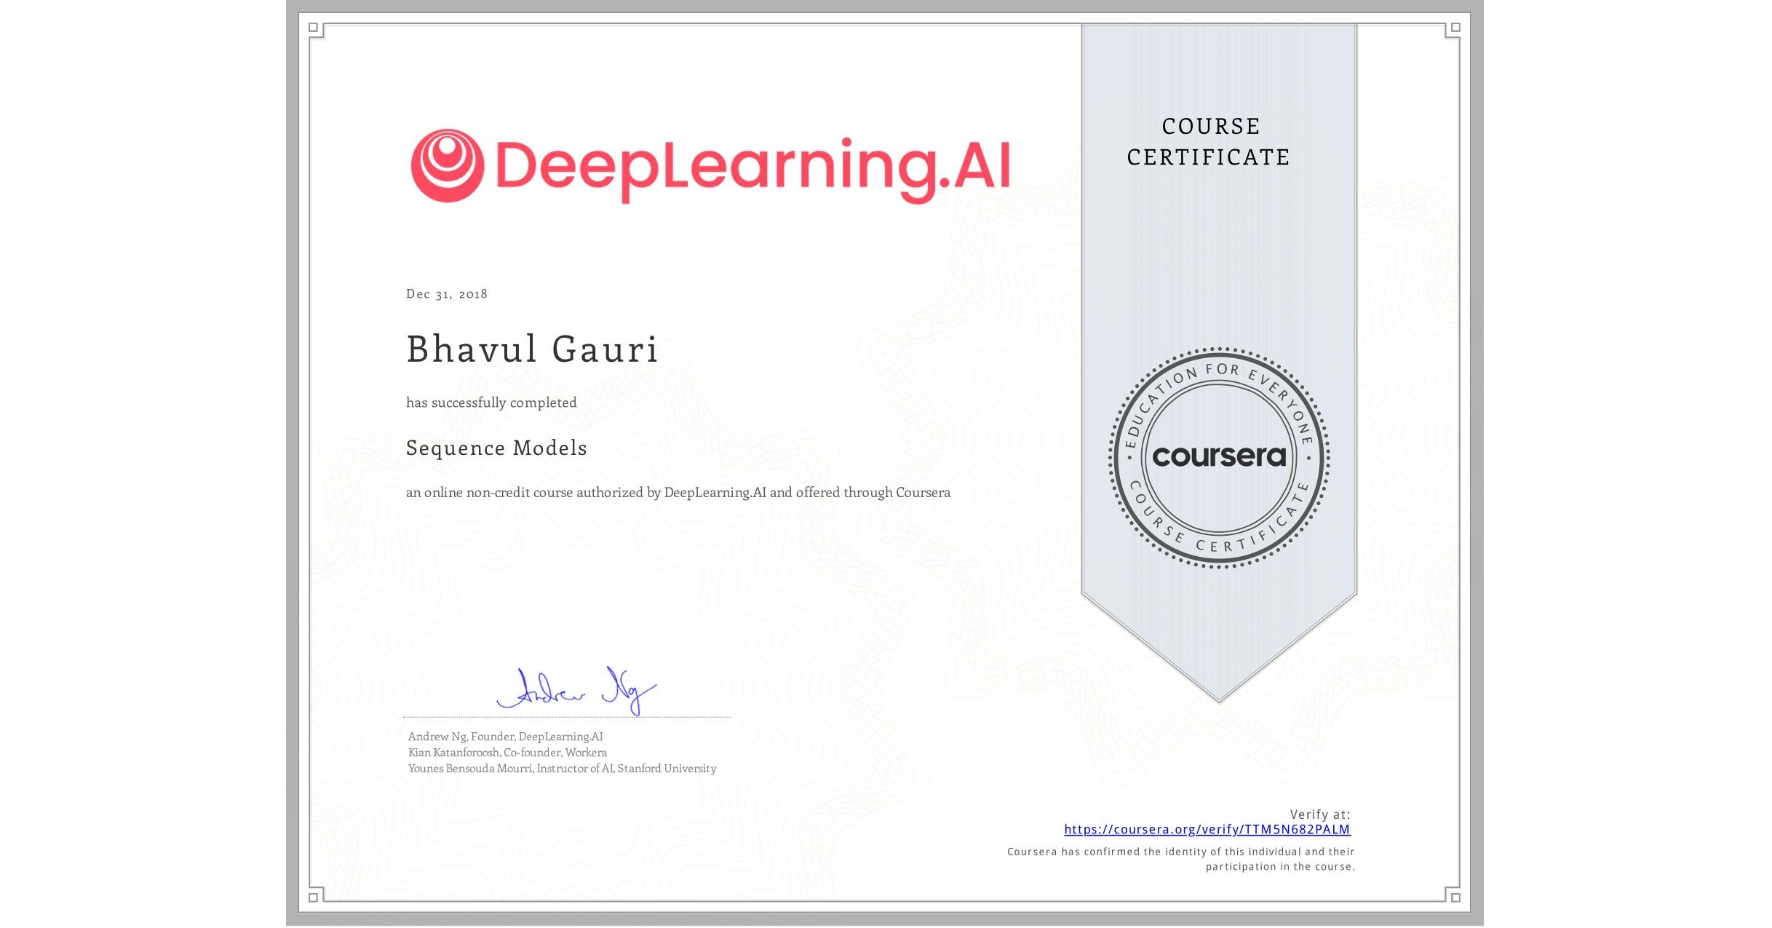 View certificate for Bhavul Gauri, Sequence Models, an online non-credit course authorized by DeepLearning.AI and offered through Coursera